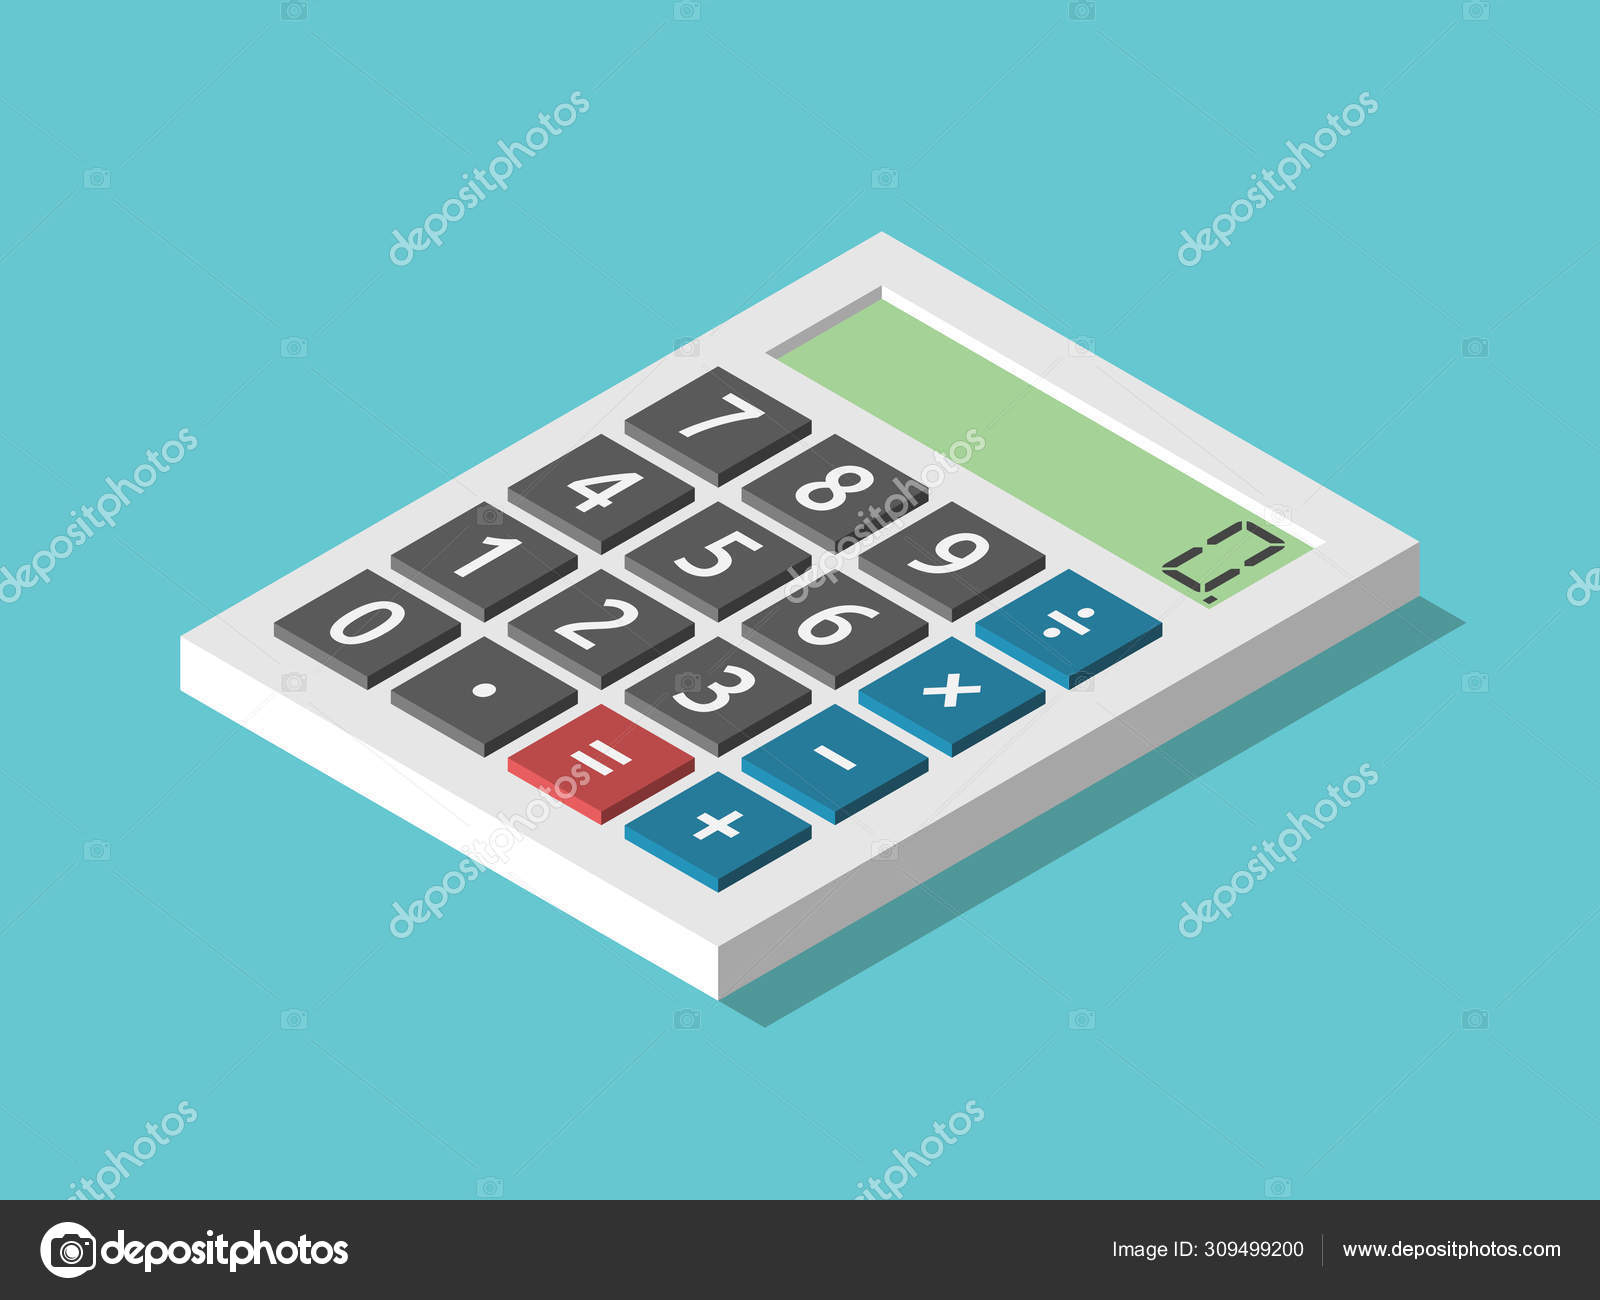 Isometric Calculator Displaying Zero — Stock Vector intended for Depo Calculator 2020